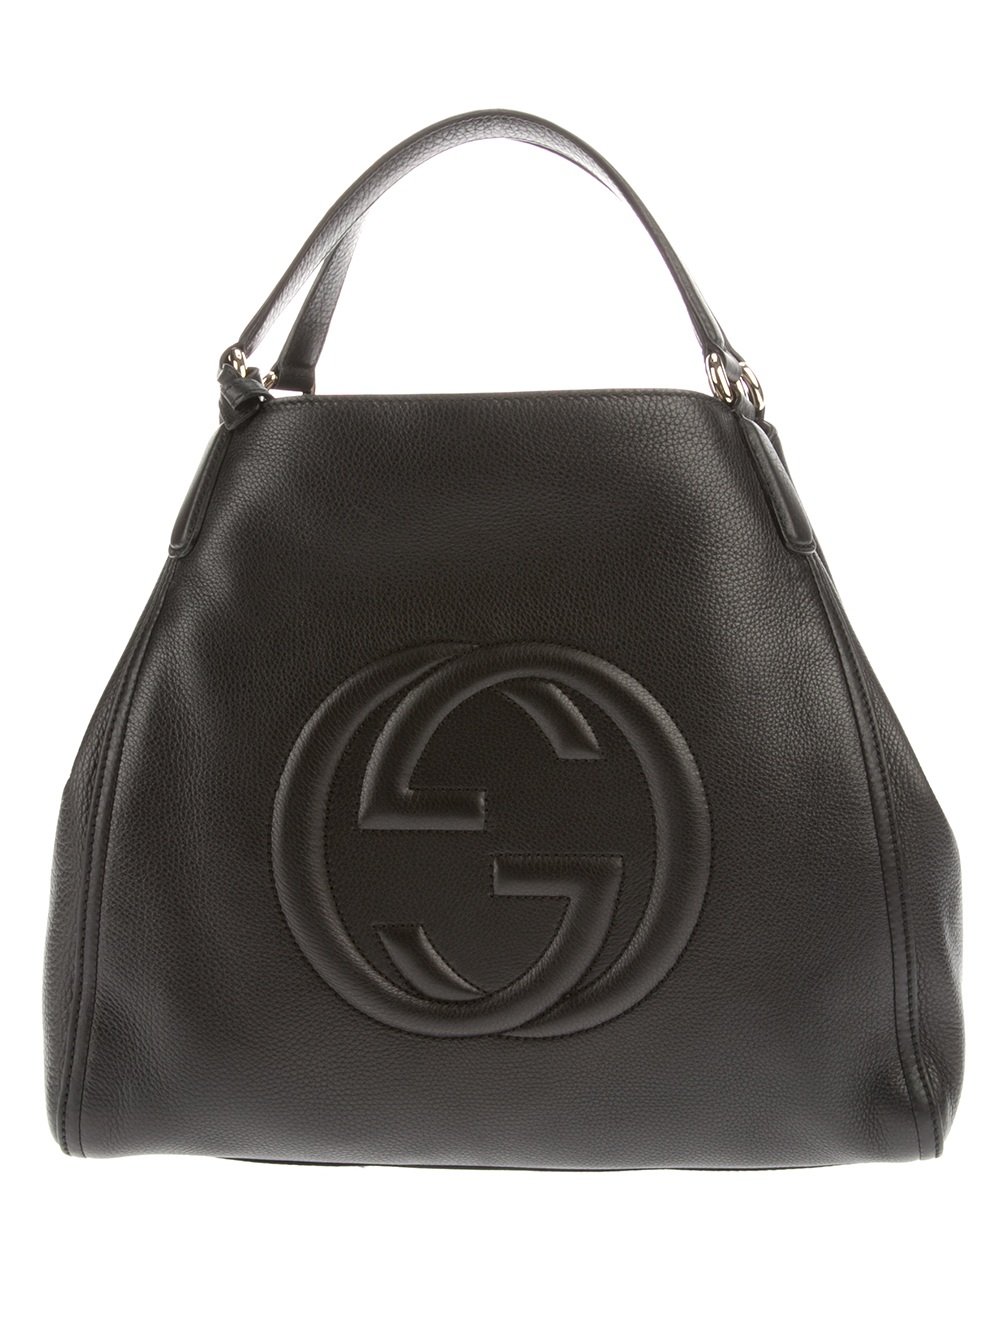 b2b851743493 Black Gucci Soho Bag | Stanford Center for Opportunity Policy in ...